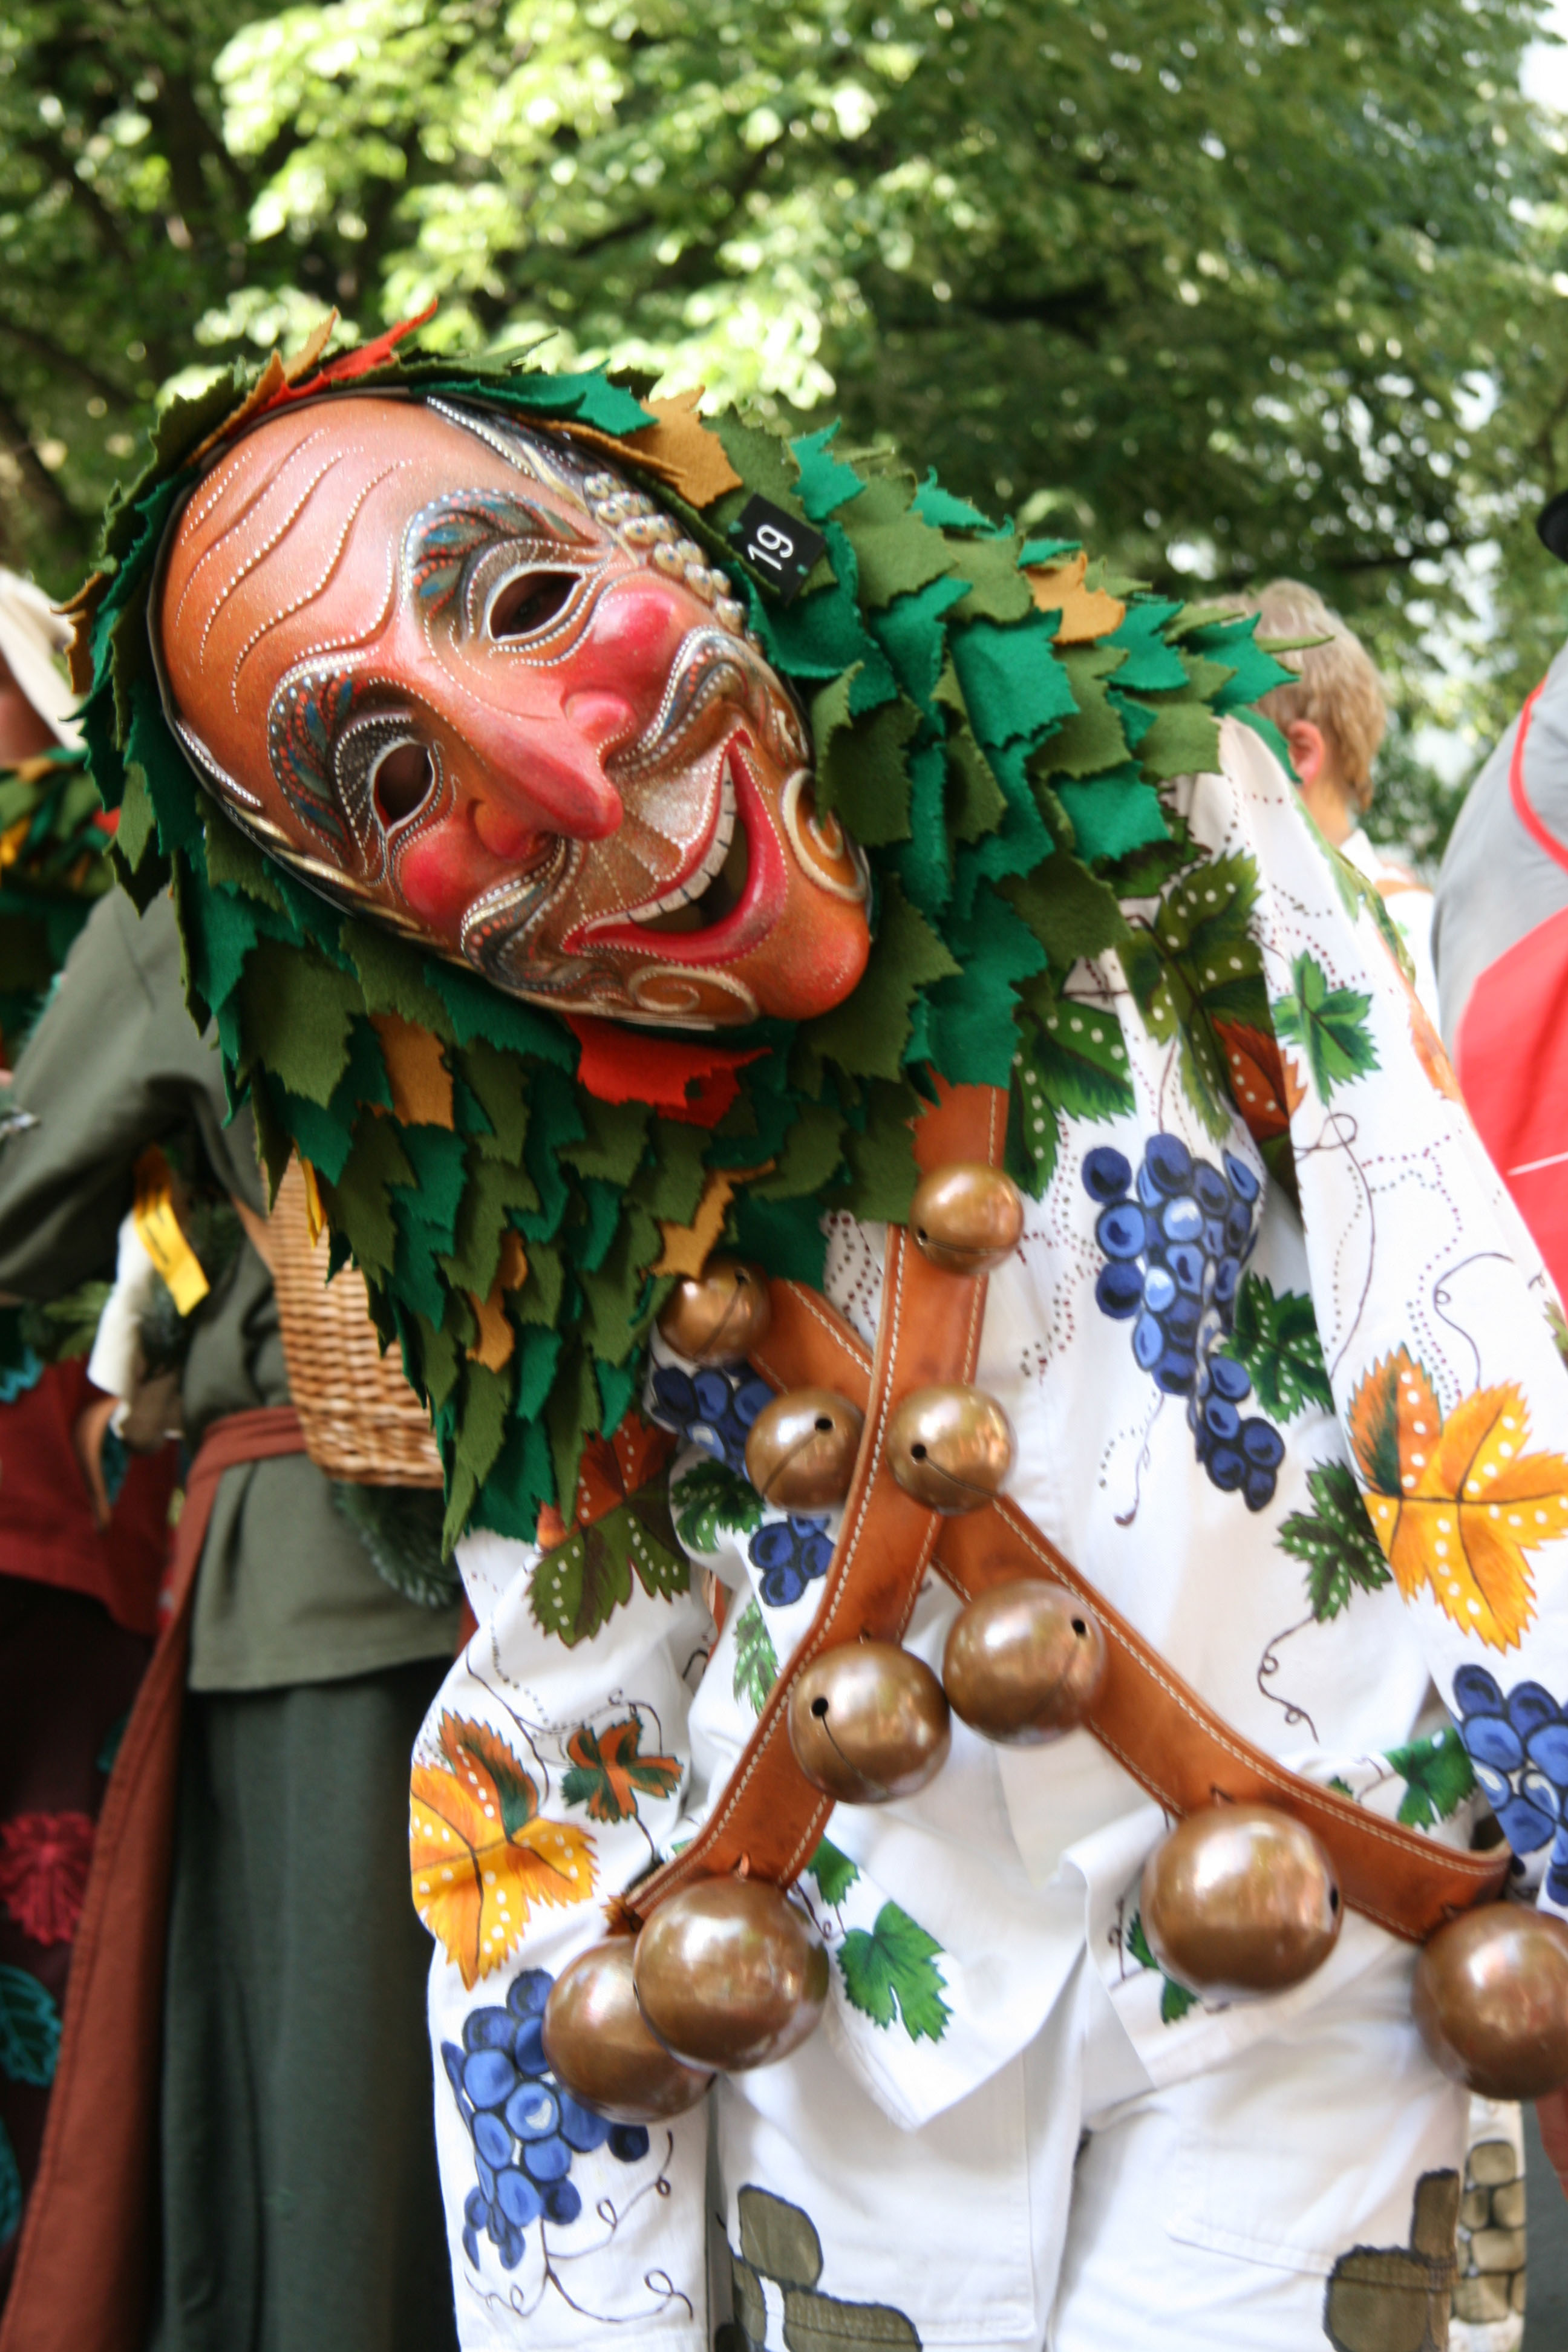 A forest creature in the parade at Karneval der Kulturen (Carnival of Cultures) in Berlin